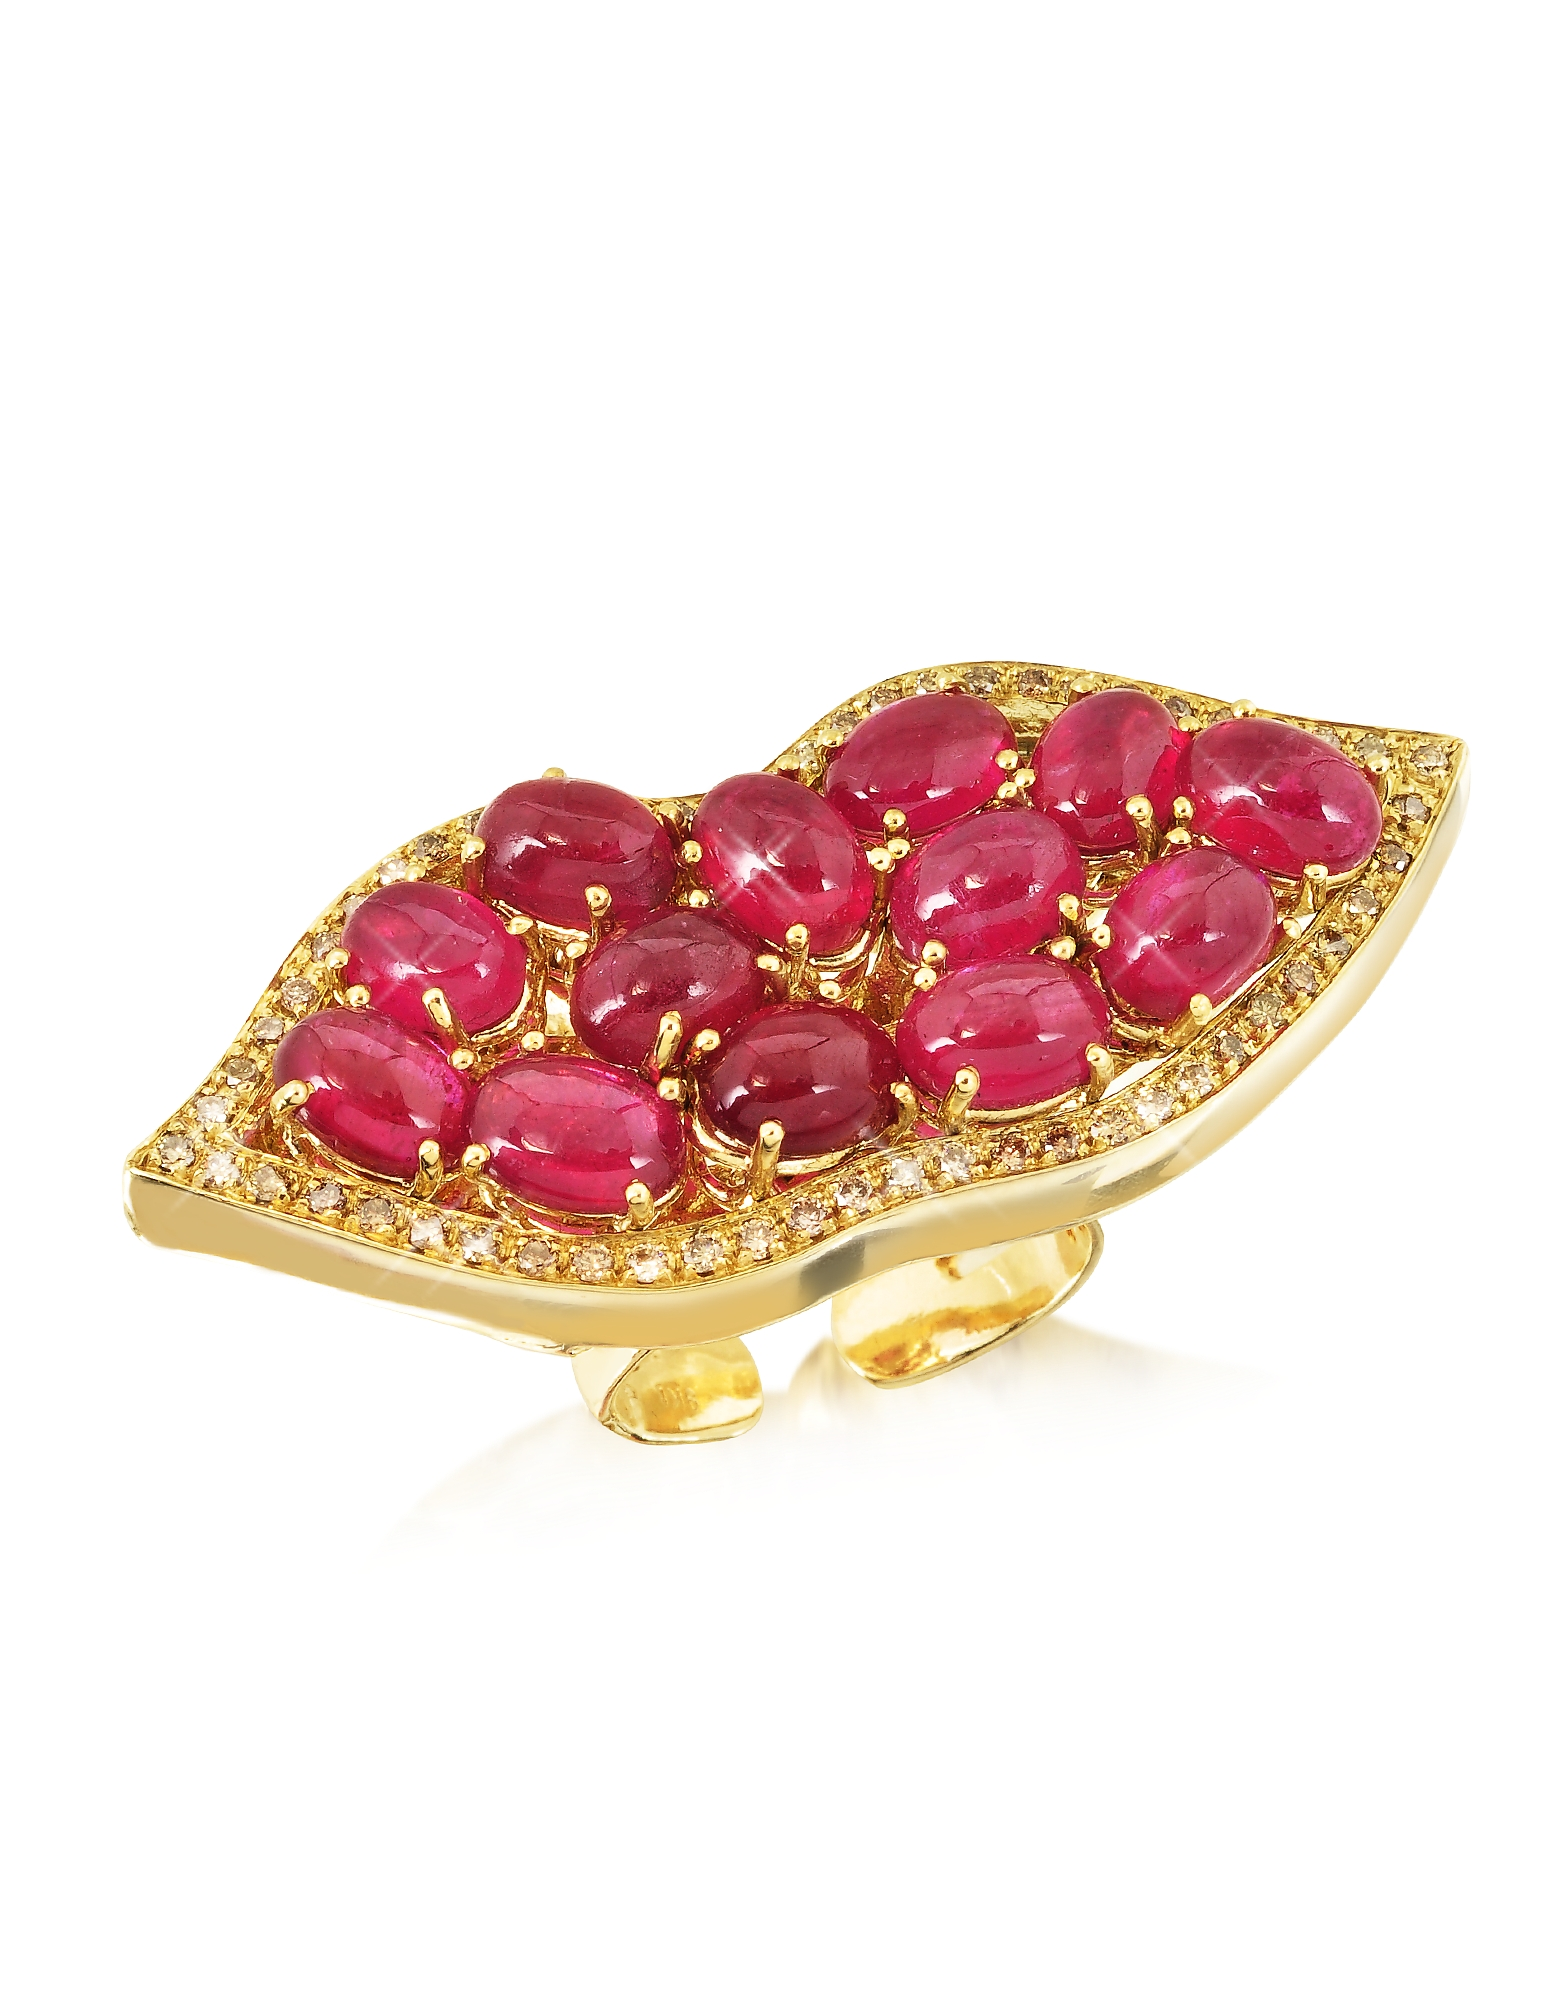 Big Mouth w/Cabochon Rubies Gold Ring